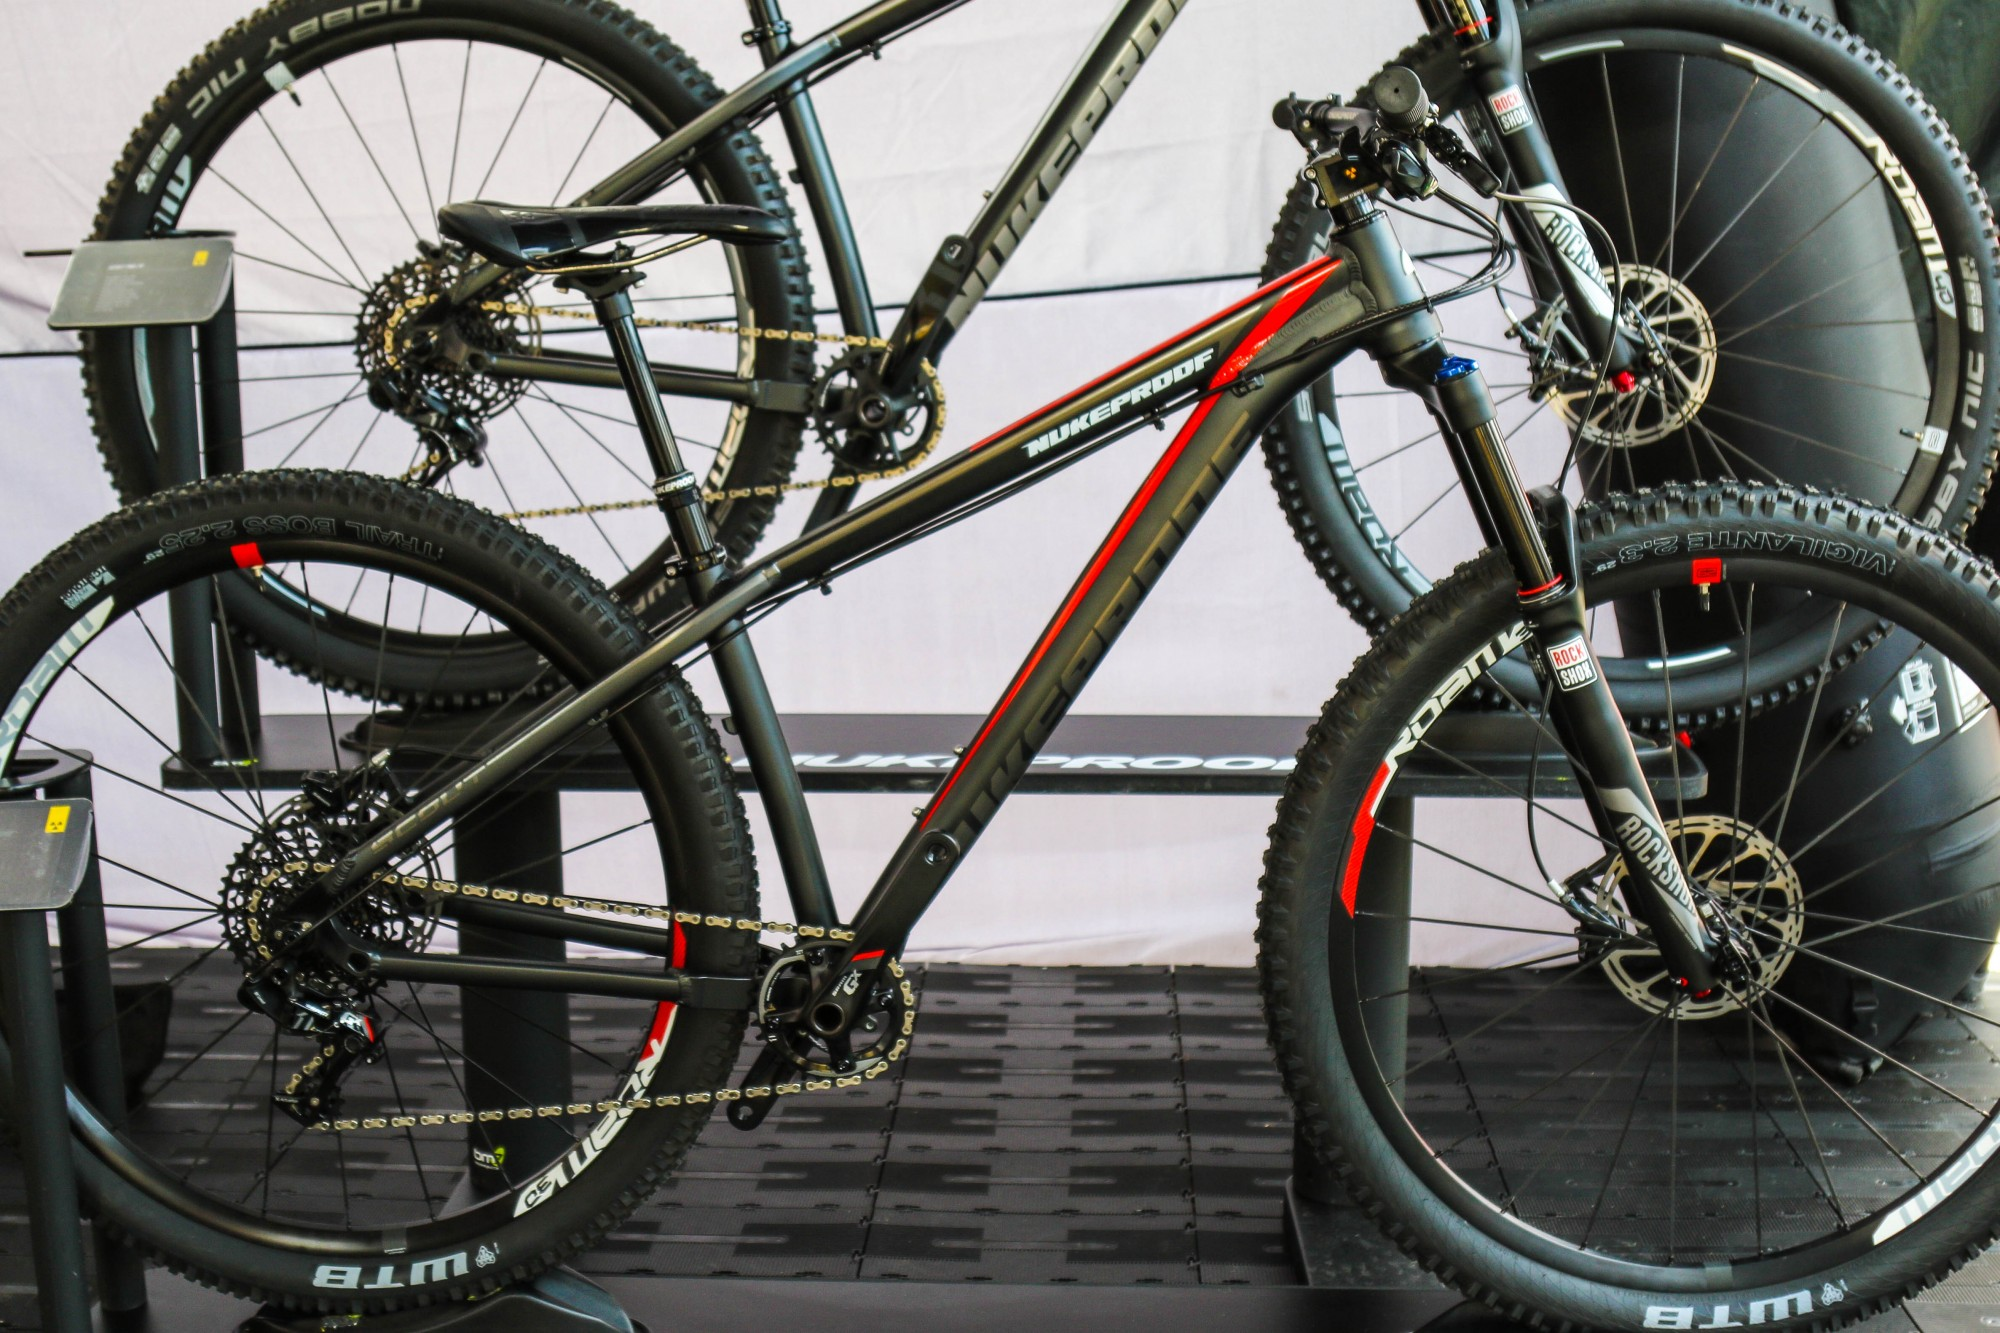 Best Hardtail Mountain Bike >> The Best Mtb Hardtails For 2016 Factory Jackson Factory Jackson